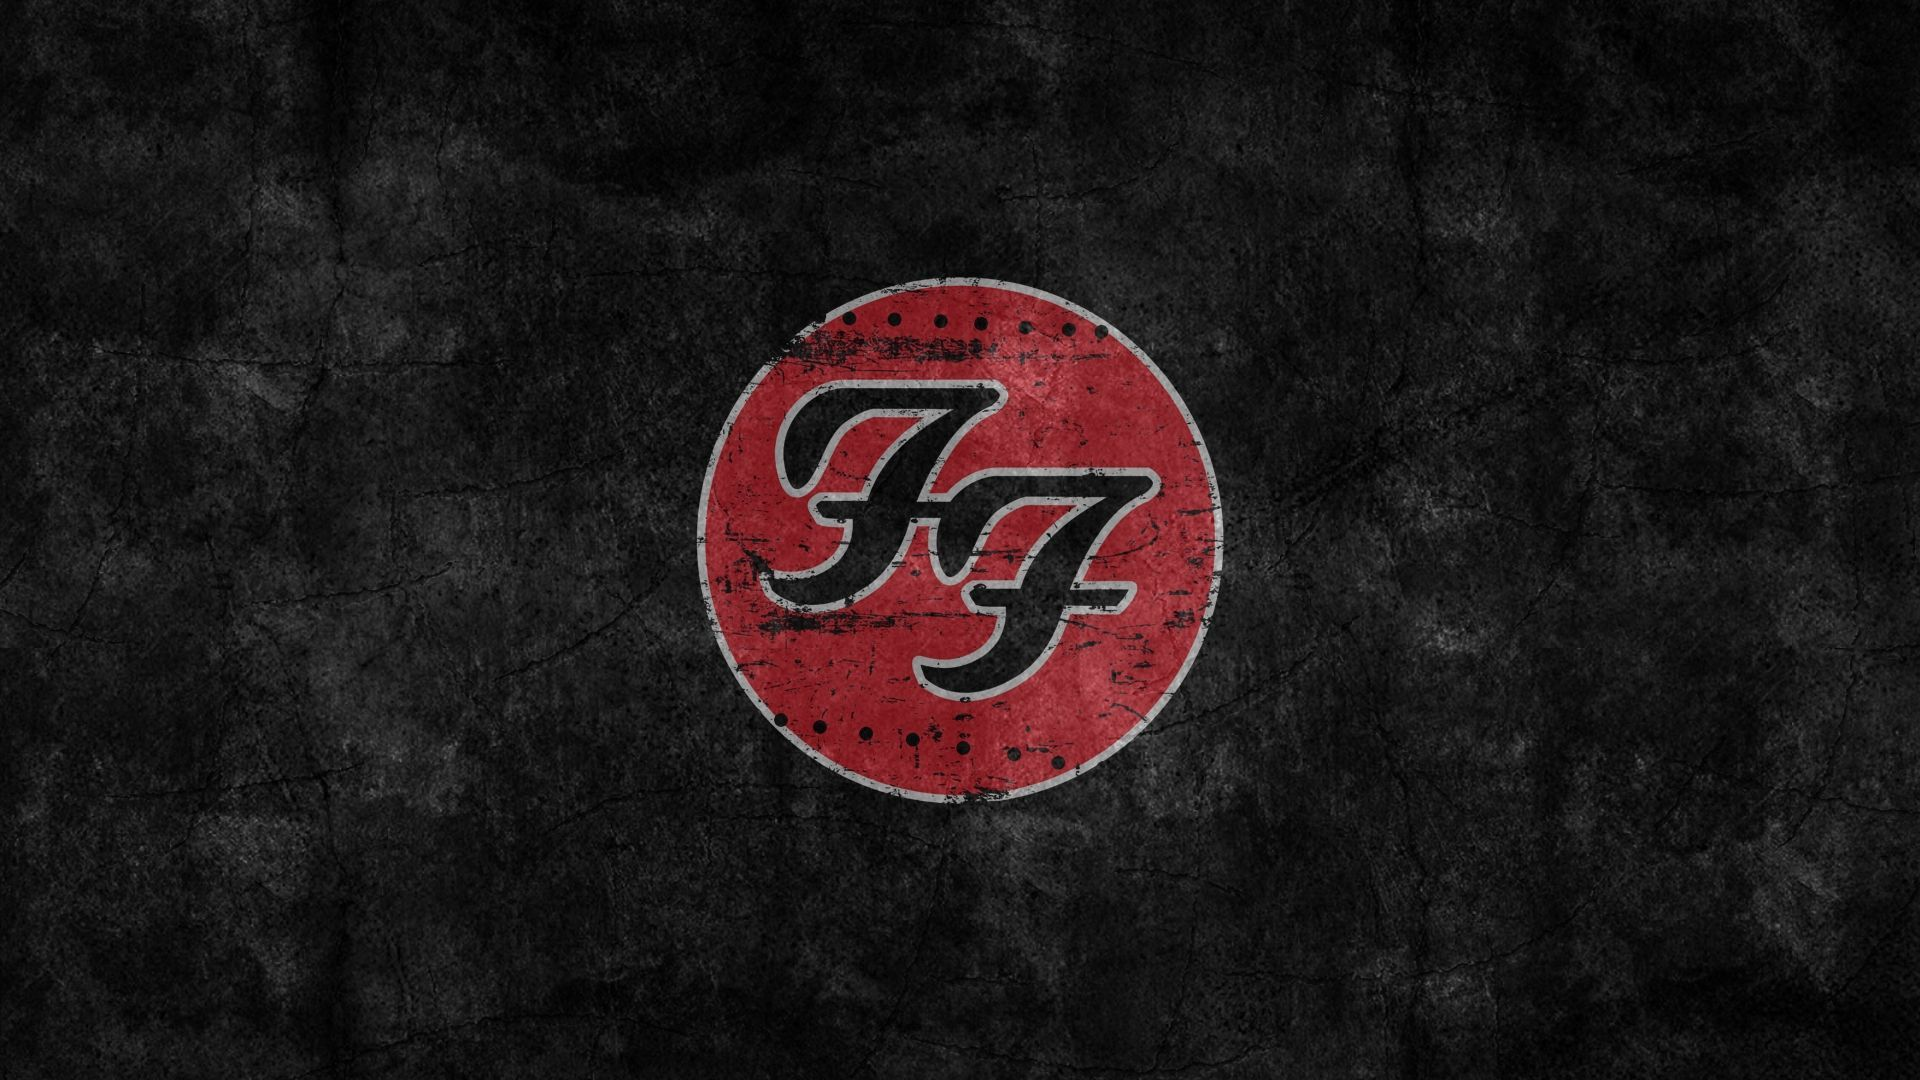 4690 - ¿Cuánto sabes de Foo Fighters?